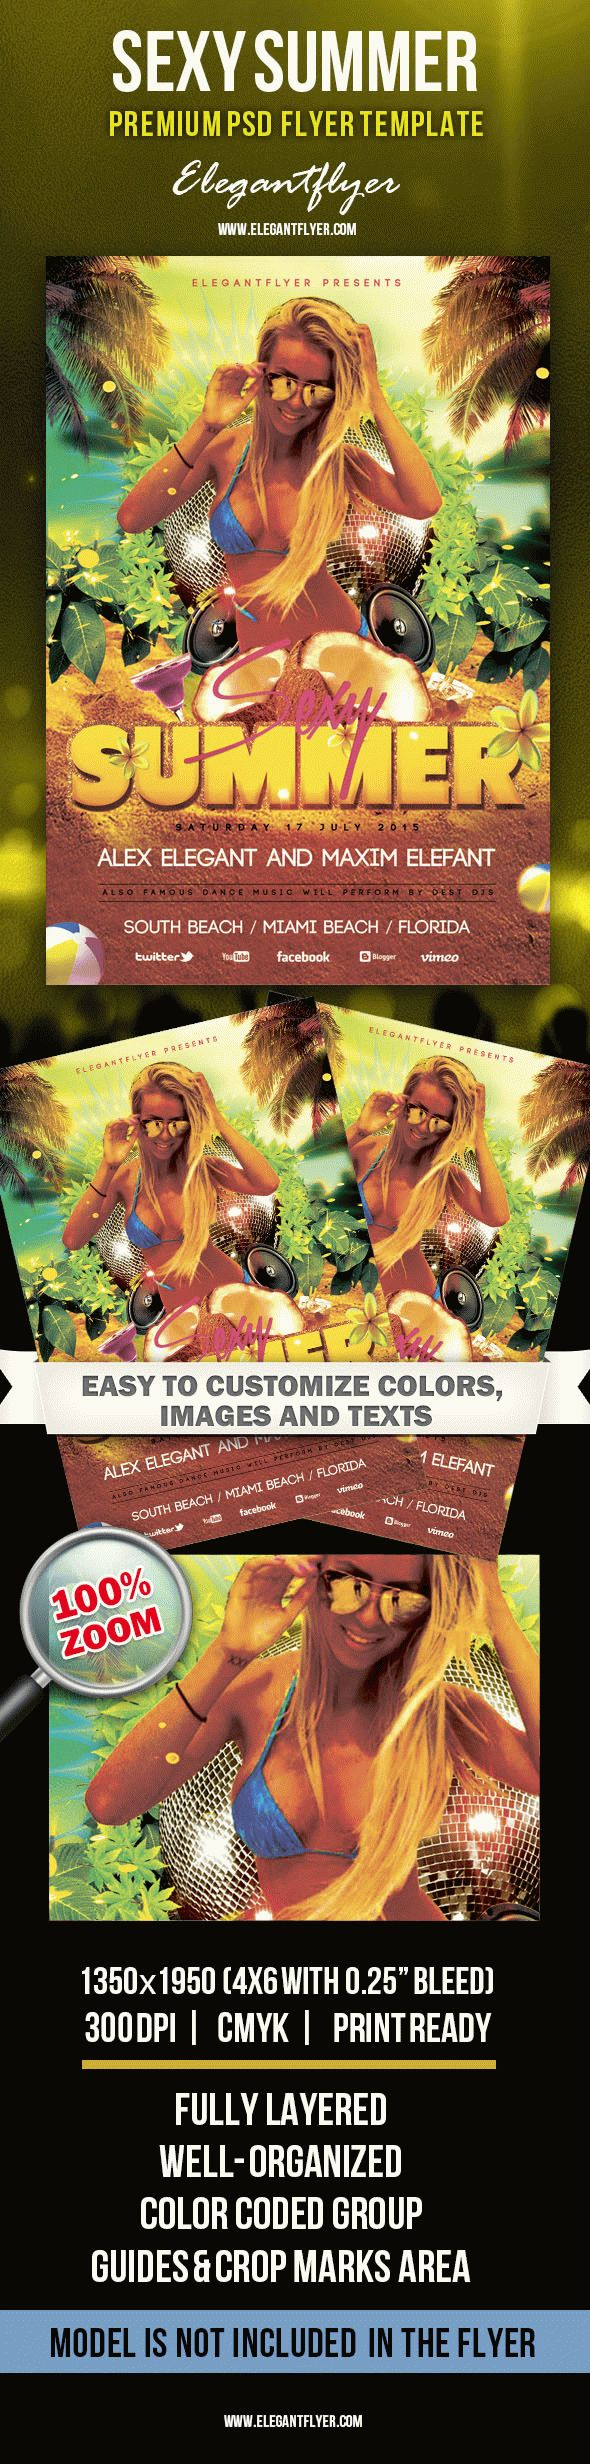 Sexy Summer – Premium Club flyer PSD Template